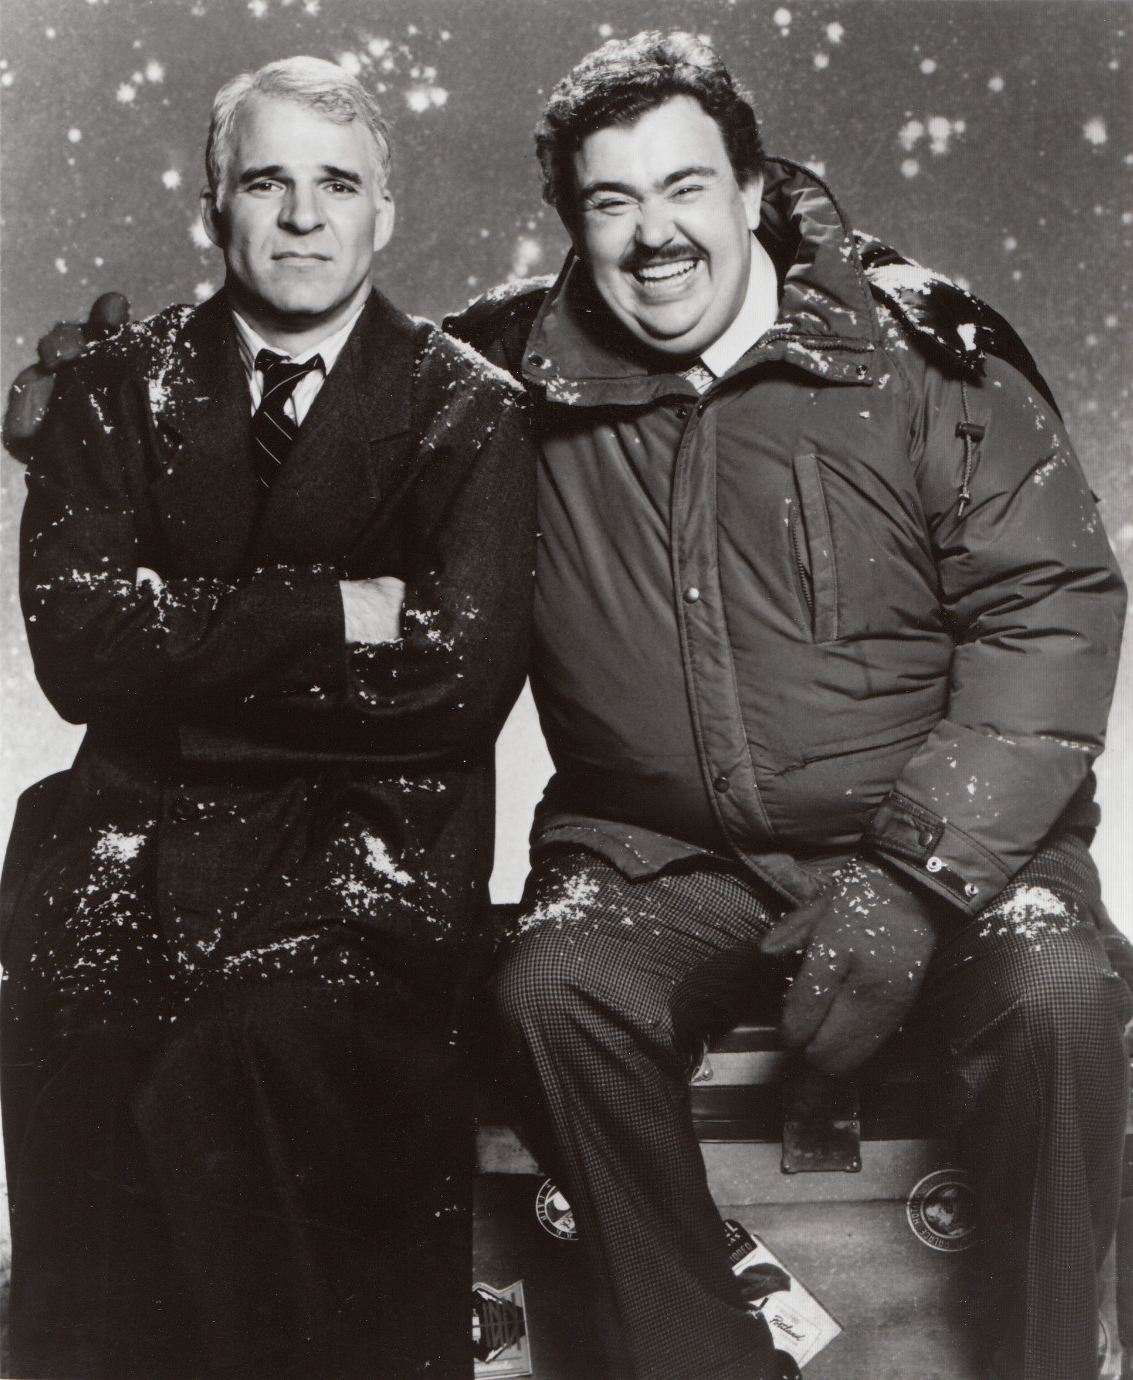 Steve Martin and John Candy - Planes, Trains and Automobiles (1987)